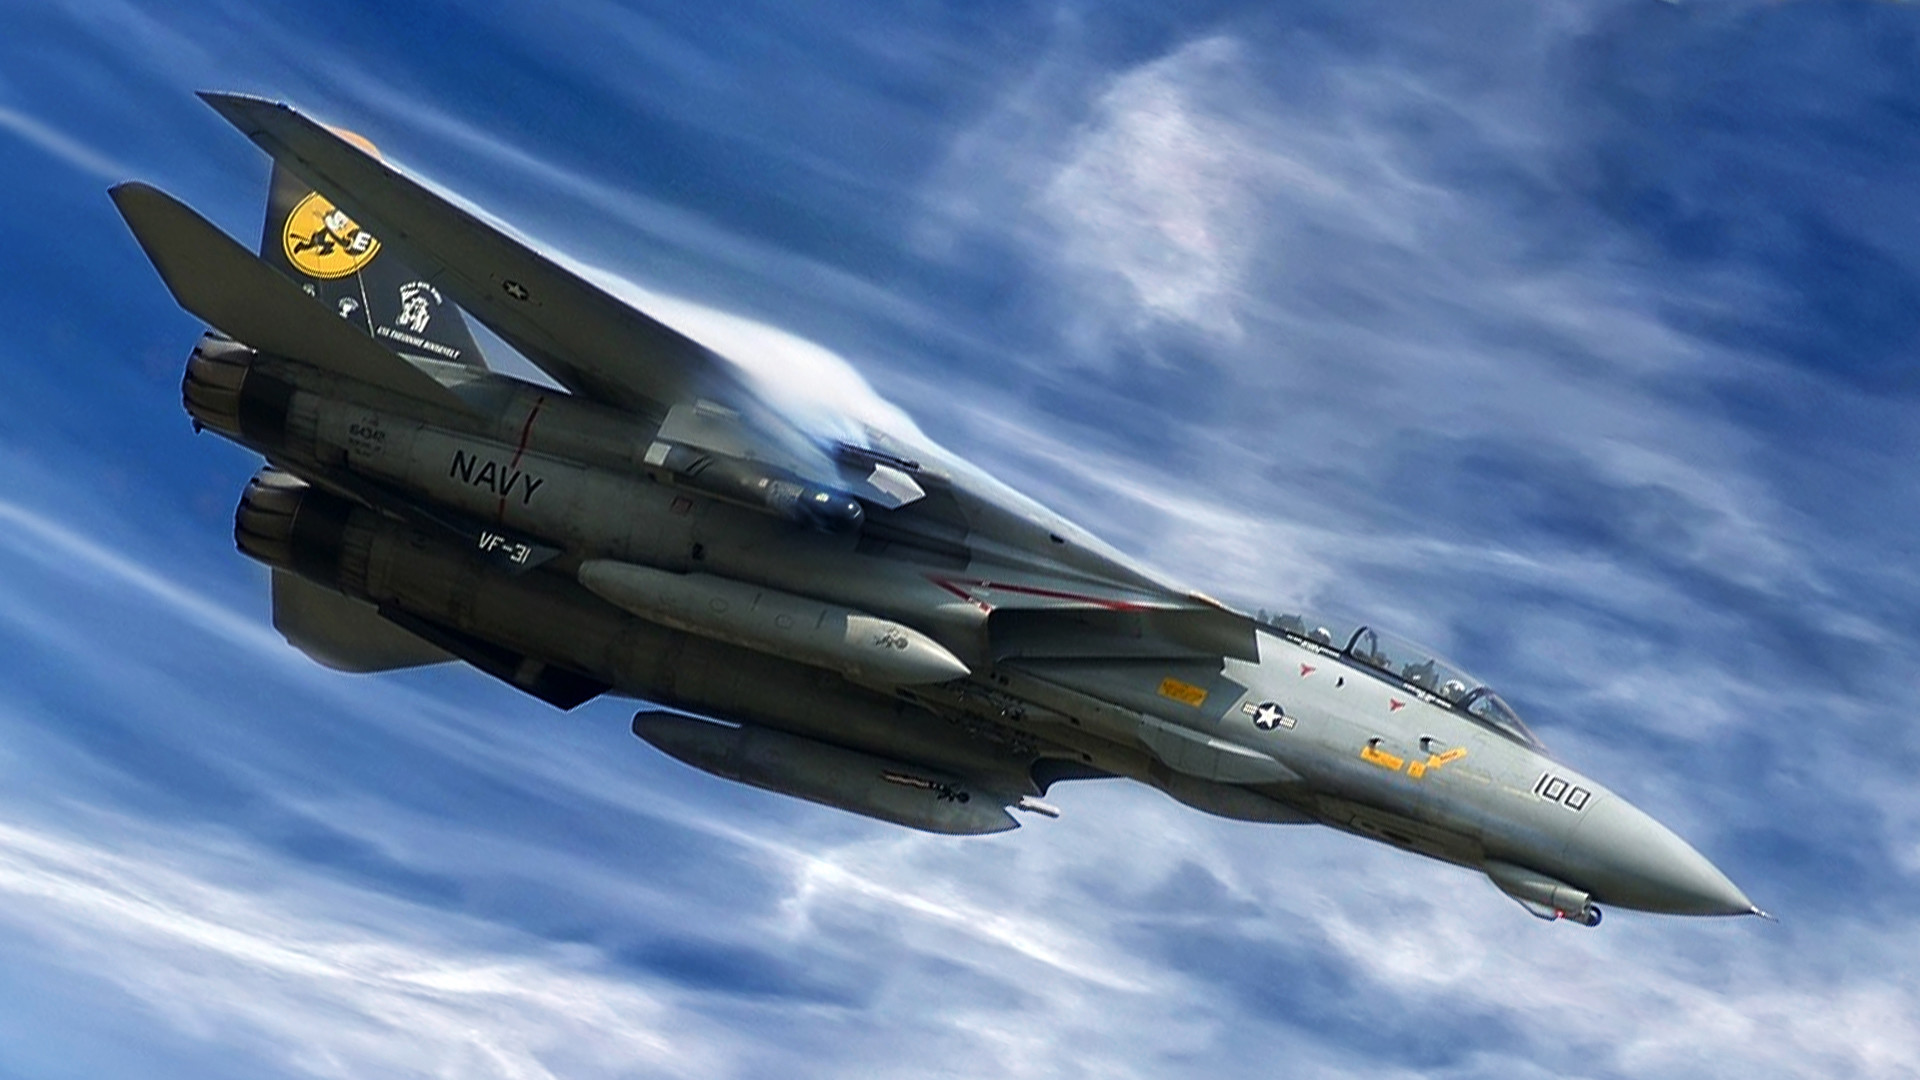 1920x1080 Grumman F-14 Tomcat HD Wallpaper | Background Image |  | ID:151861  - Wallpaper Abyss